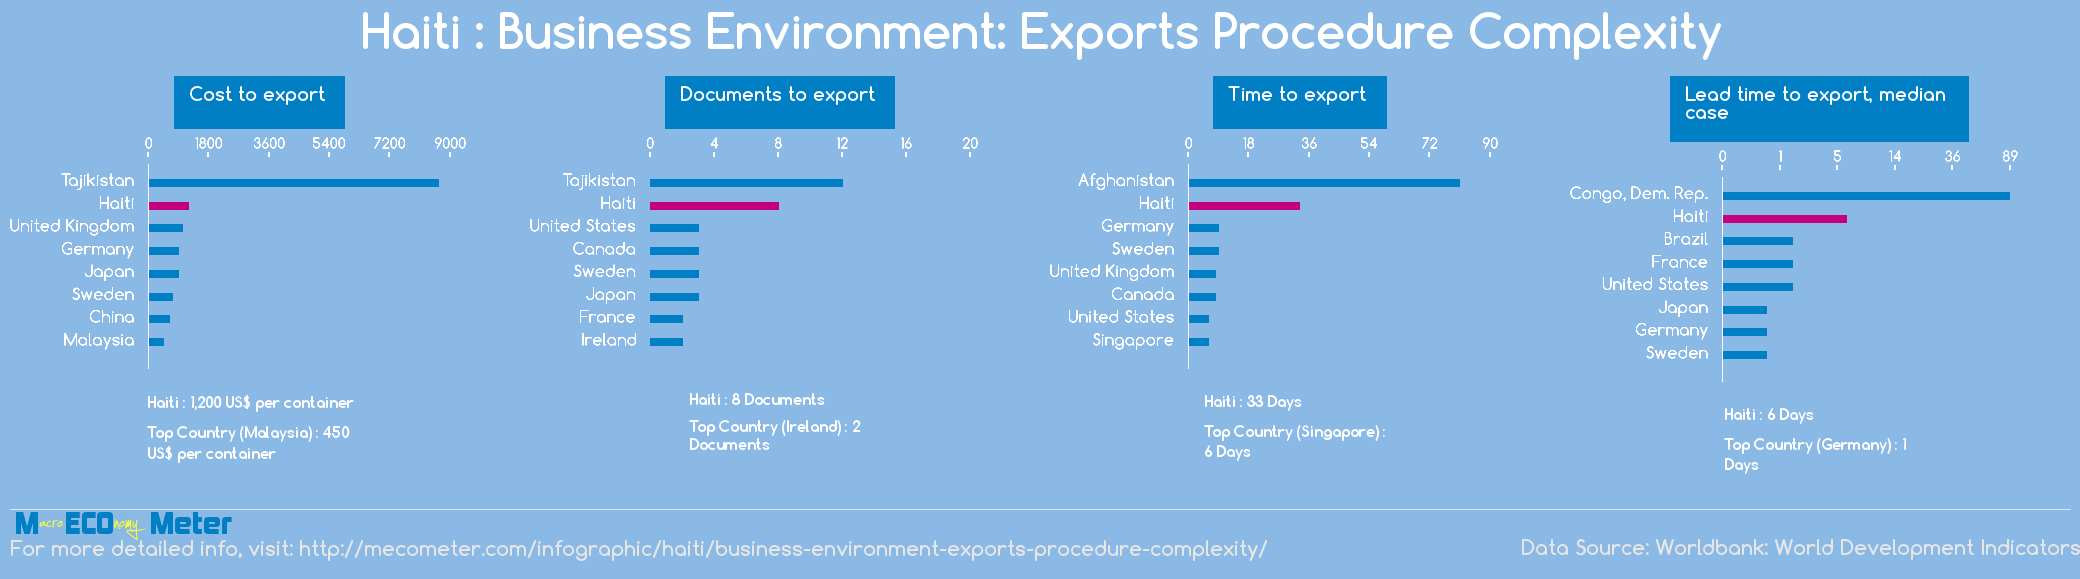 Haiti : Business Environment: Exports Procedure Complexity